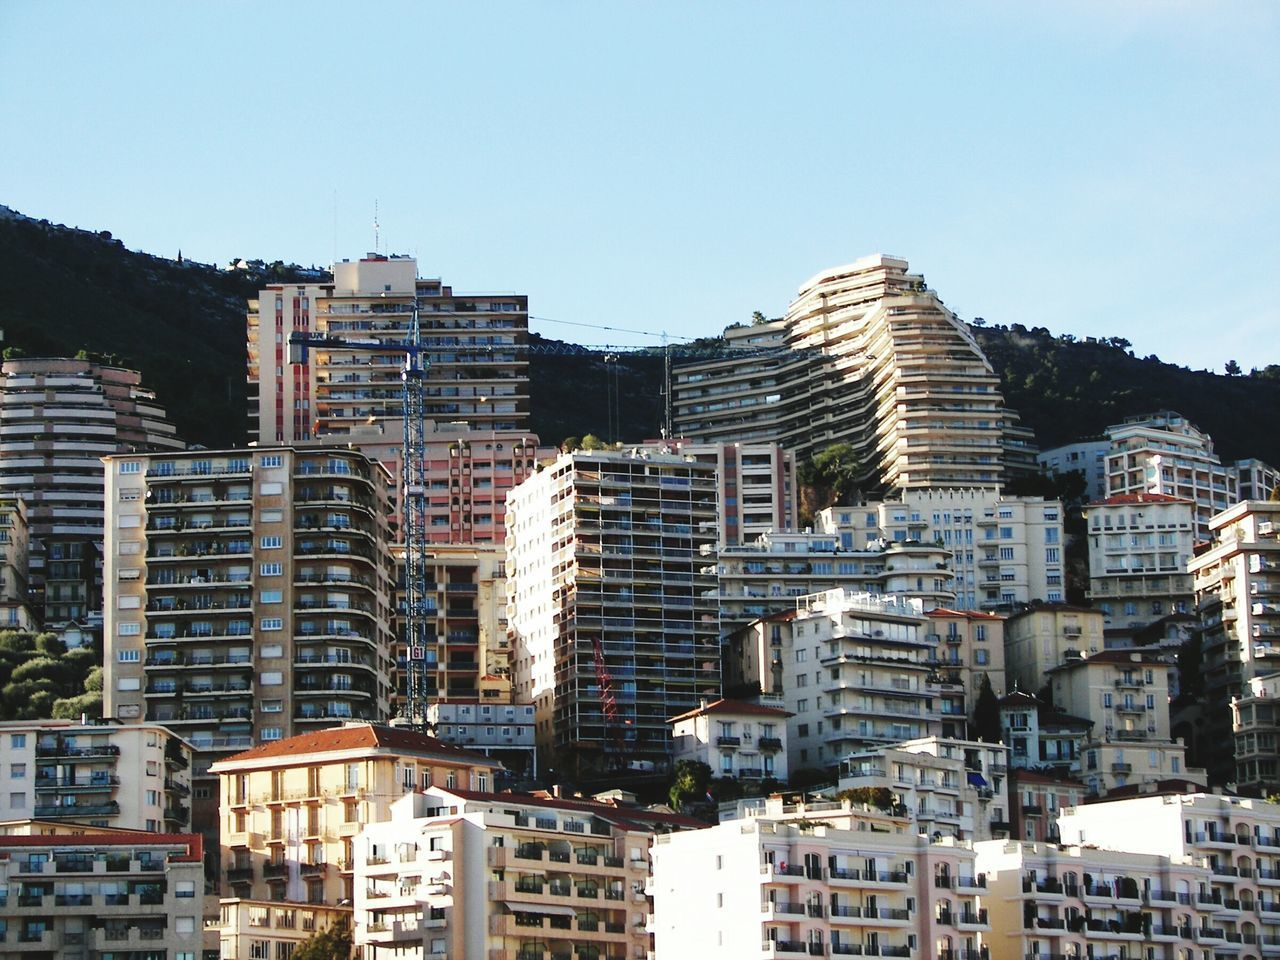 Showcase: February just love this view of Monaco France Building Building And Sky No People Architecture Famous Place Travelphotography Traveling Travel Photography Tranquility Nature Natural Beauty Perspective Day Blue Sky EyeEm Best Shots Outdoors Shadow Apartment Buildings Copy Space Residential Building Residential District Sunny